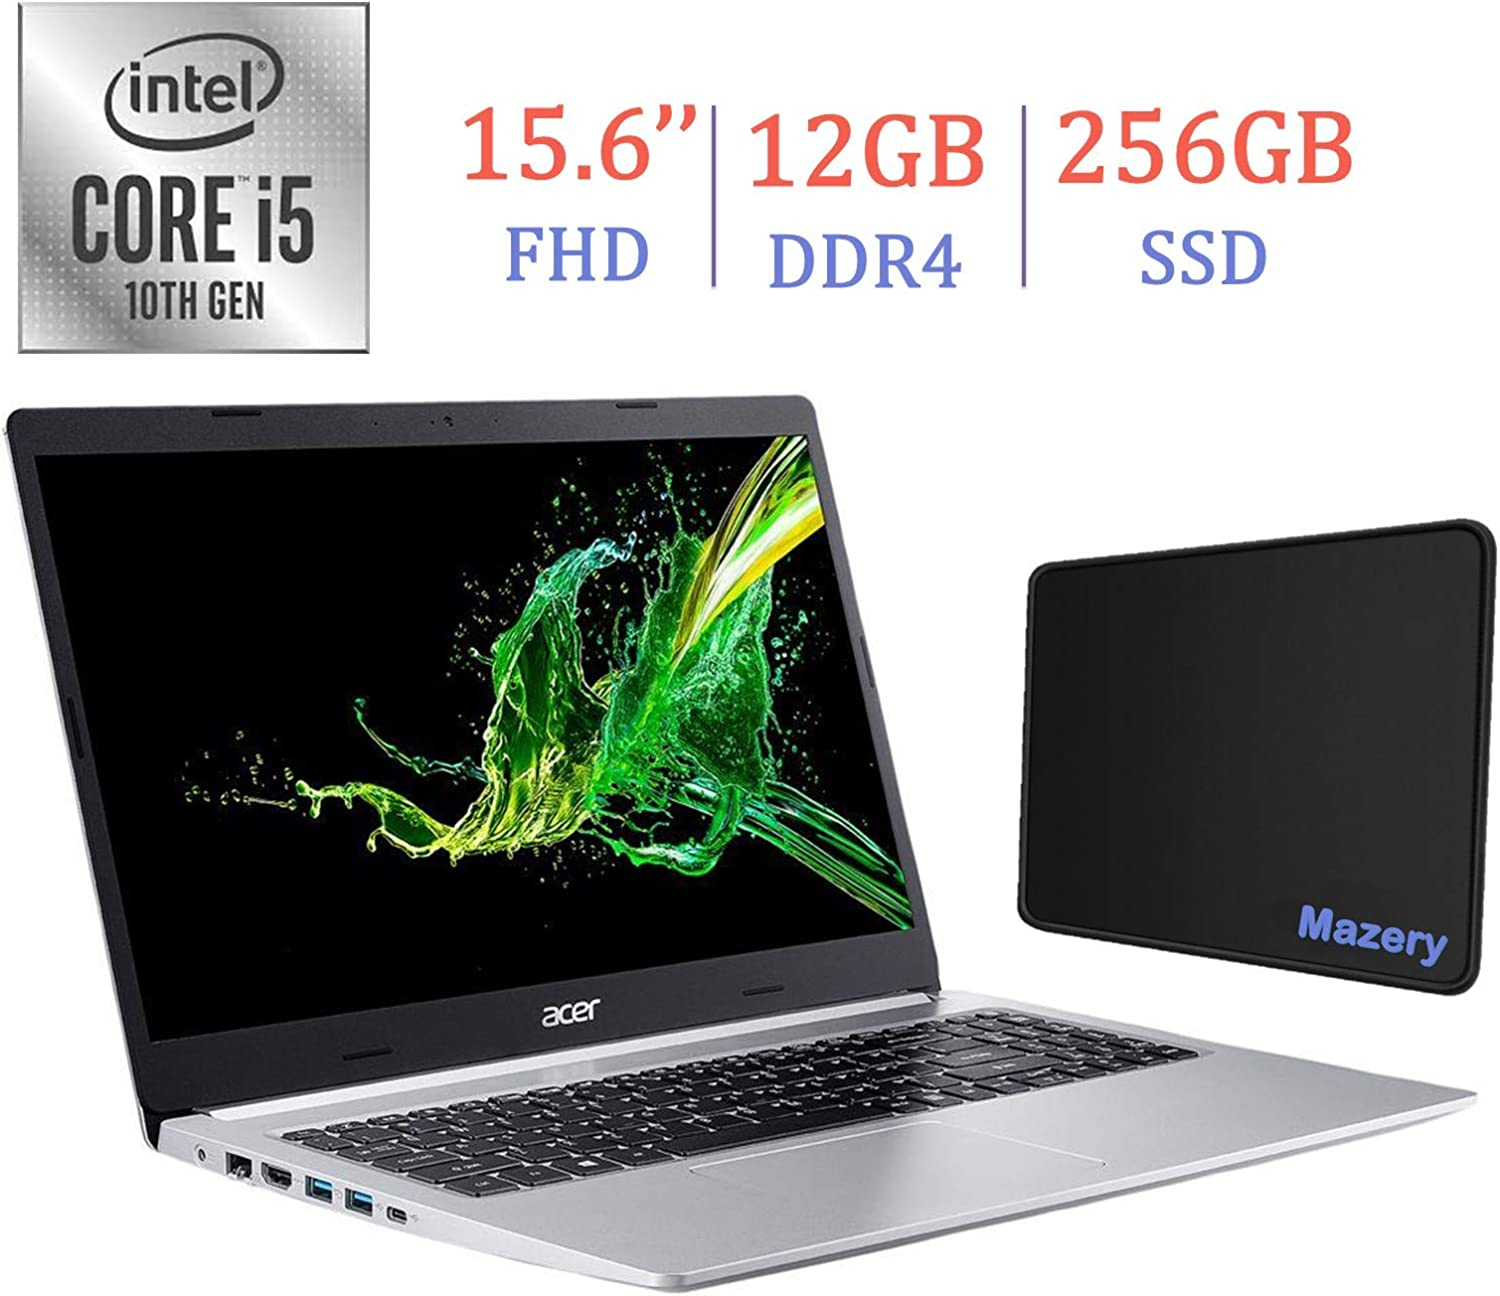 Acer Aspire 5 A515 15.6-inch FHD (1920x1080) Laptop PC, 10th Gen Quad-Core Intel i5-10210U up to 4.2GHz, 12GB DDR4, 256GB SSD, Stereo Speakers, Intel UHD Graphics 620, Windows 10 w/Mazery Mousepad